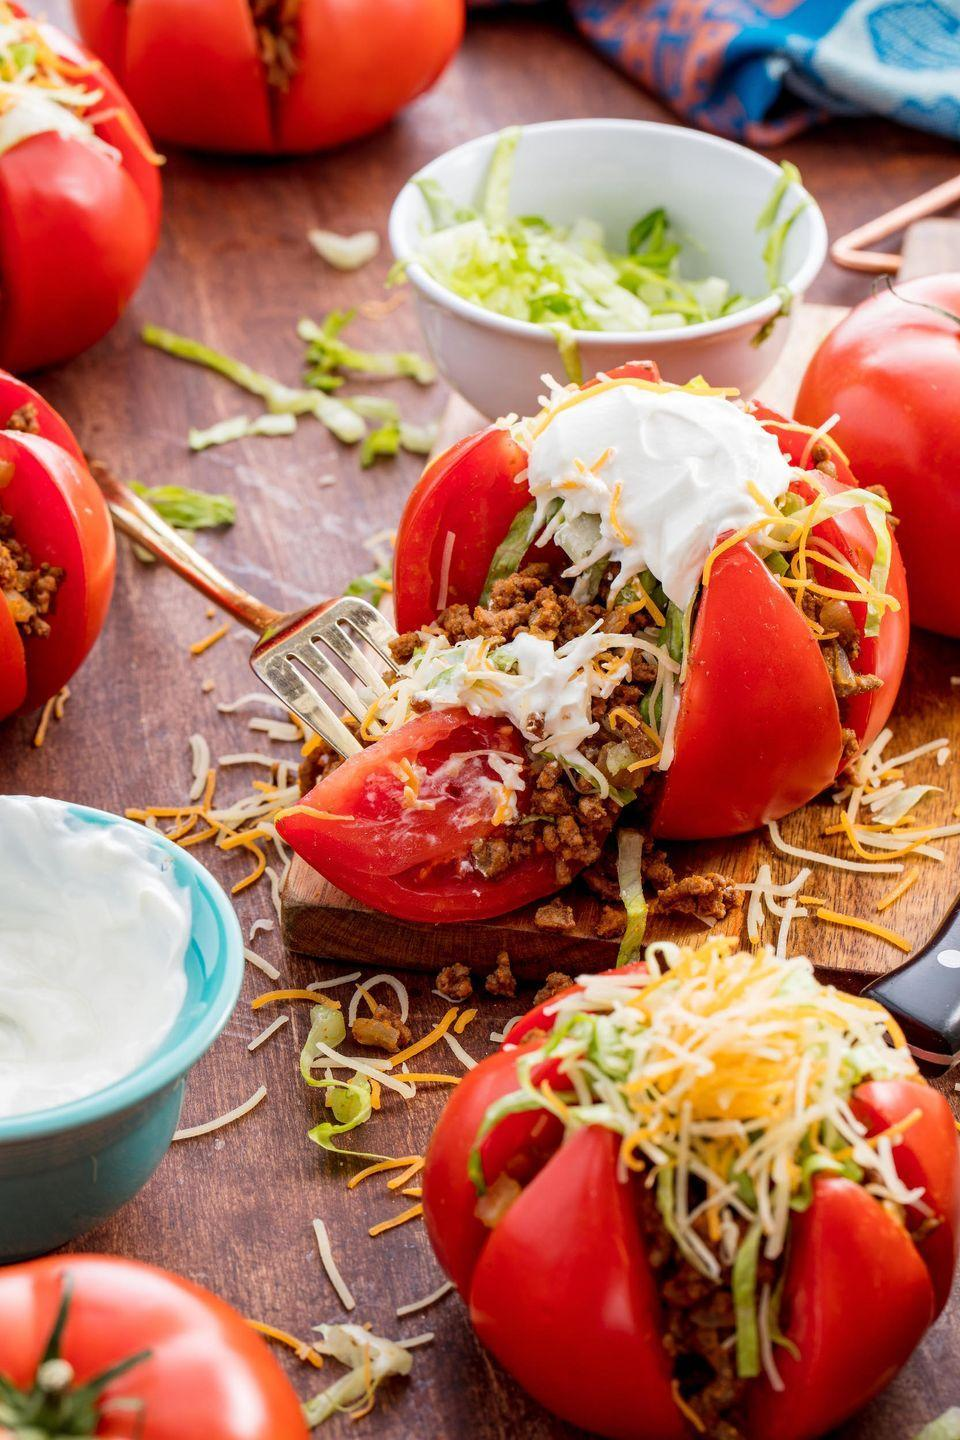 "<p>Who knew that whole tomatoes could be such a great vessel for all of this deliciousness?</p><p>Get the recipe from <a href=""https://www.delish.com/cooking/recipe-ideas/recipes/a54559/taco-tomatoes-recipe/"" rel=""nofollow noopener"" target=""_blank"" data-ylk=""slk:Delish"" class=""link rapid-noclick-resp"">Delish</a>?</p>"